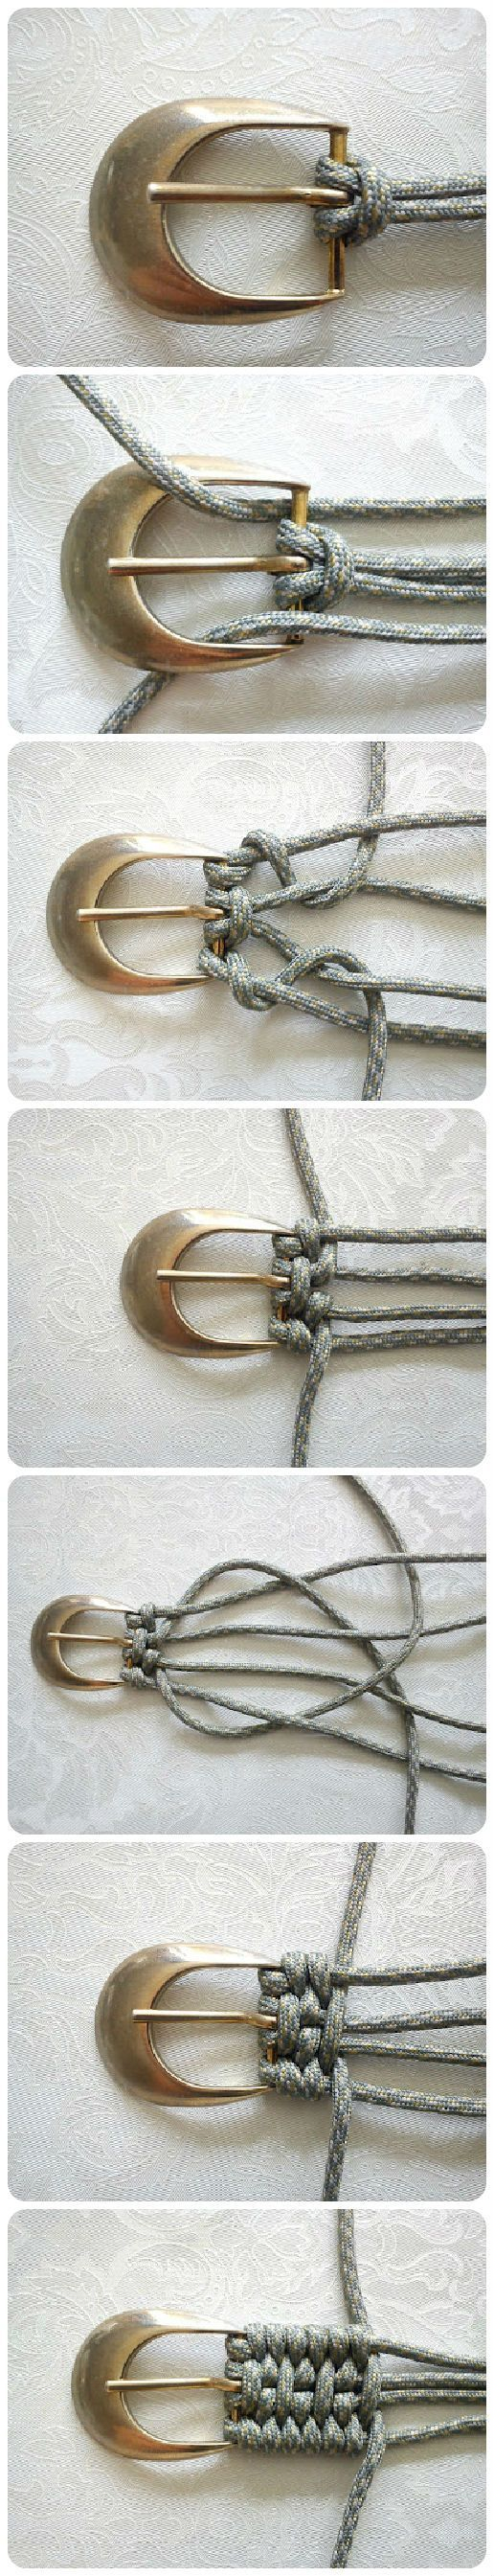 Как сплести ремень (Duy) LL: This seems to be in Russian, and the photo guide doesn't show how to finish, but what a neat idea!